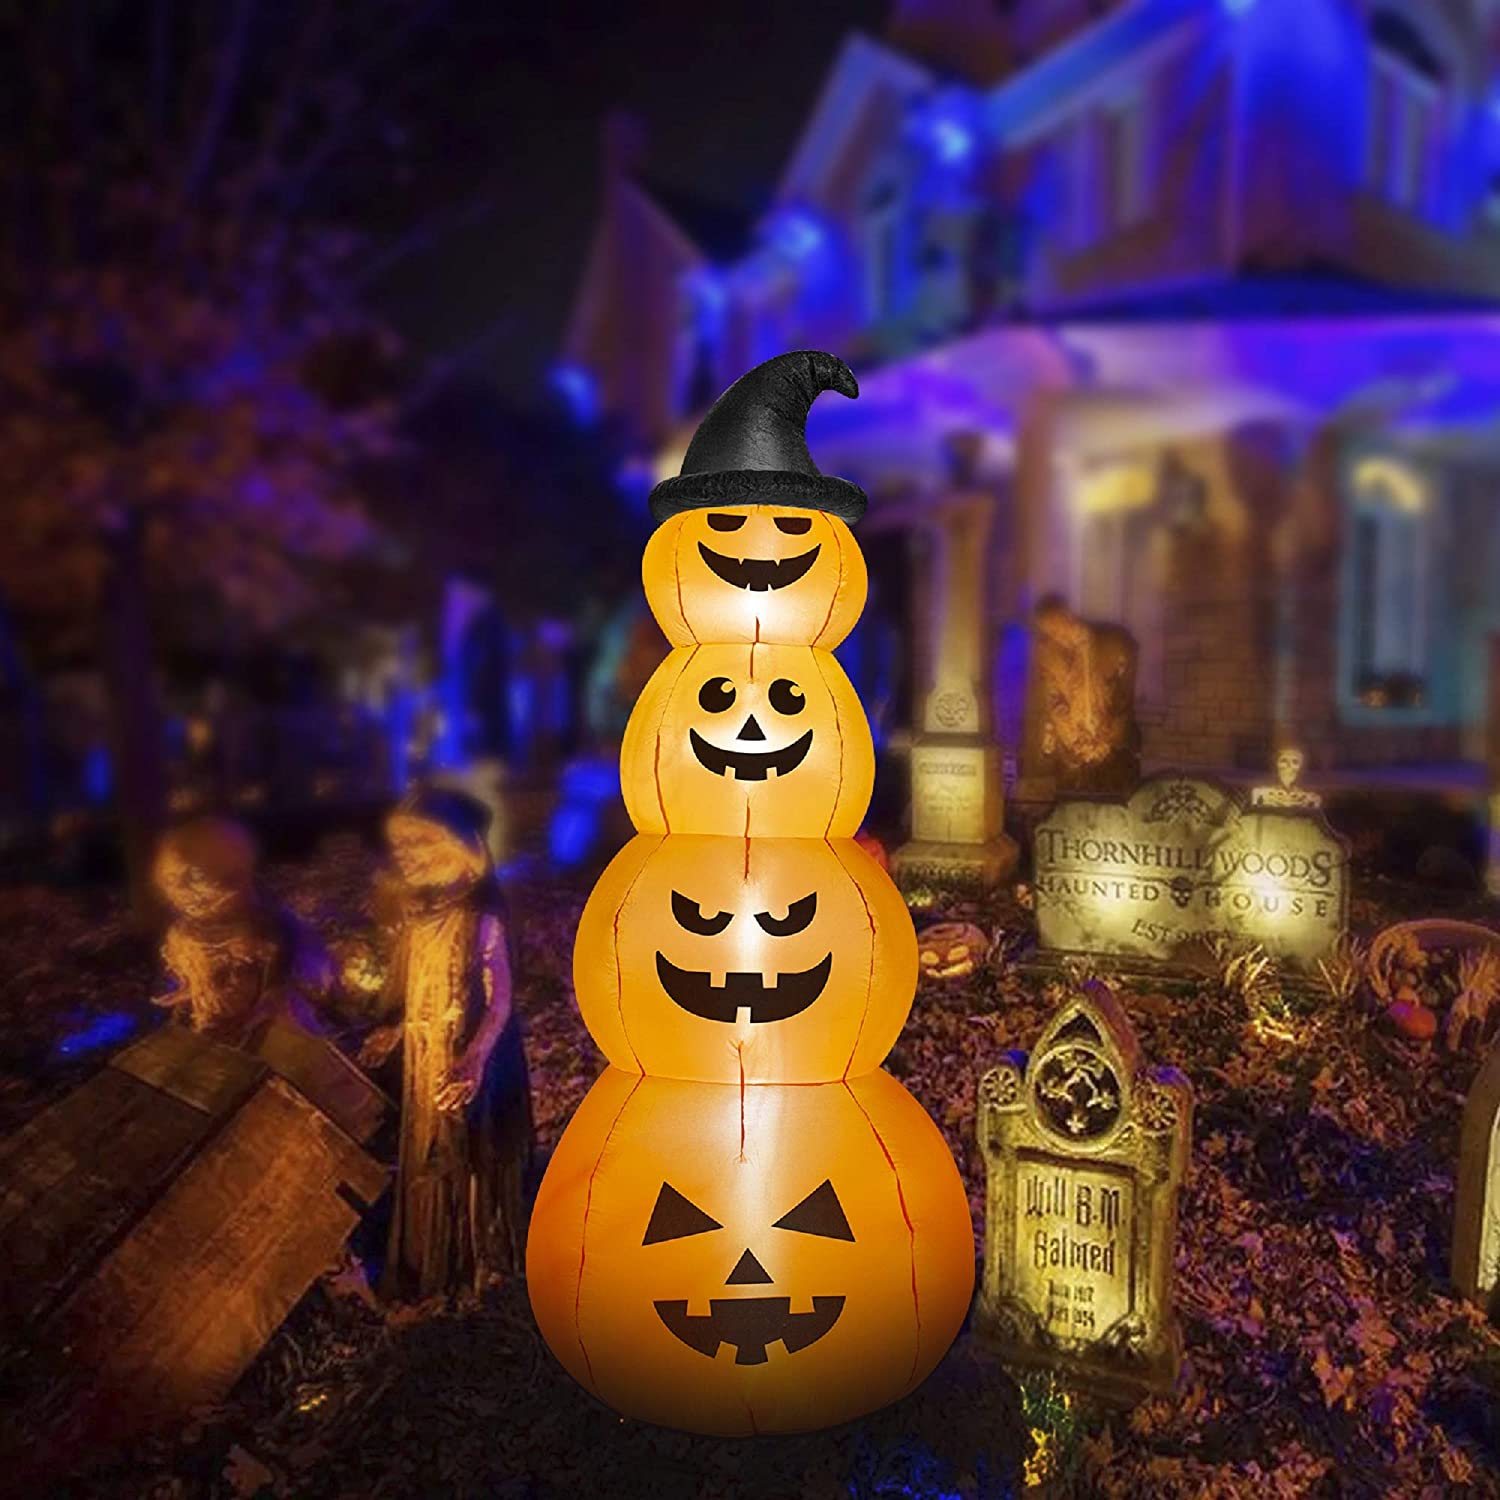 HOOJO 8 FT Halloween Inflatable Stacked Pumpkins Outdoor Decoration with Build in LEDs, Blow up Indoor, Yard, Garden Lawn Decoration